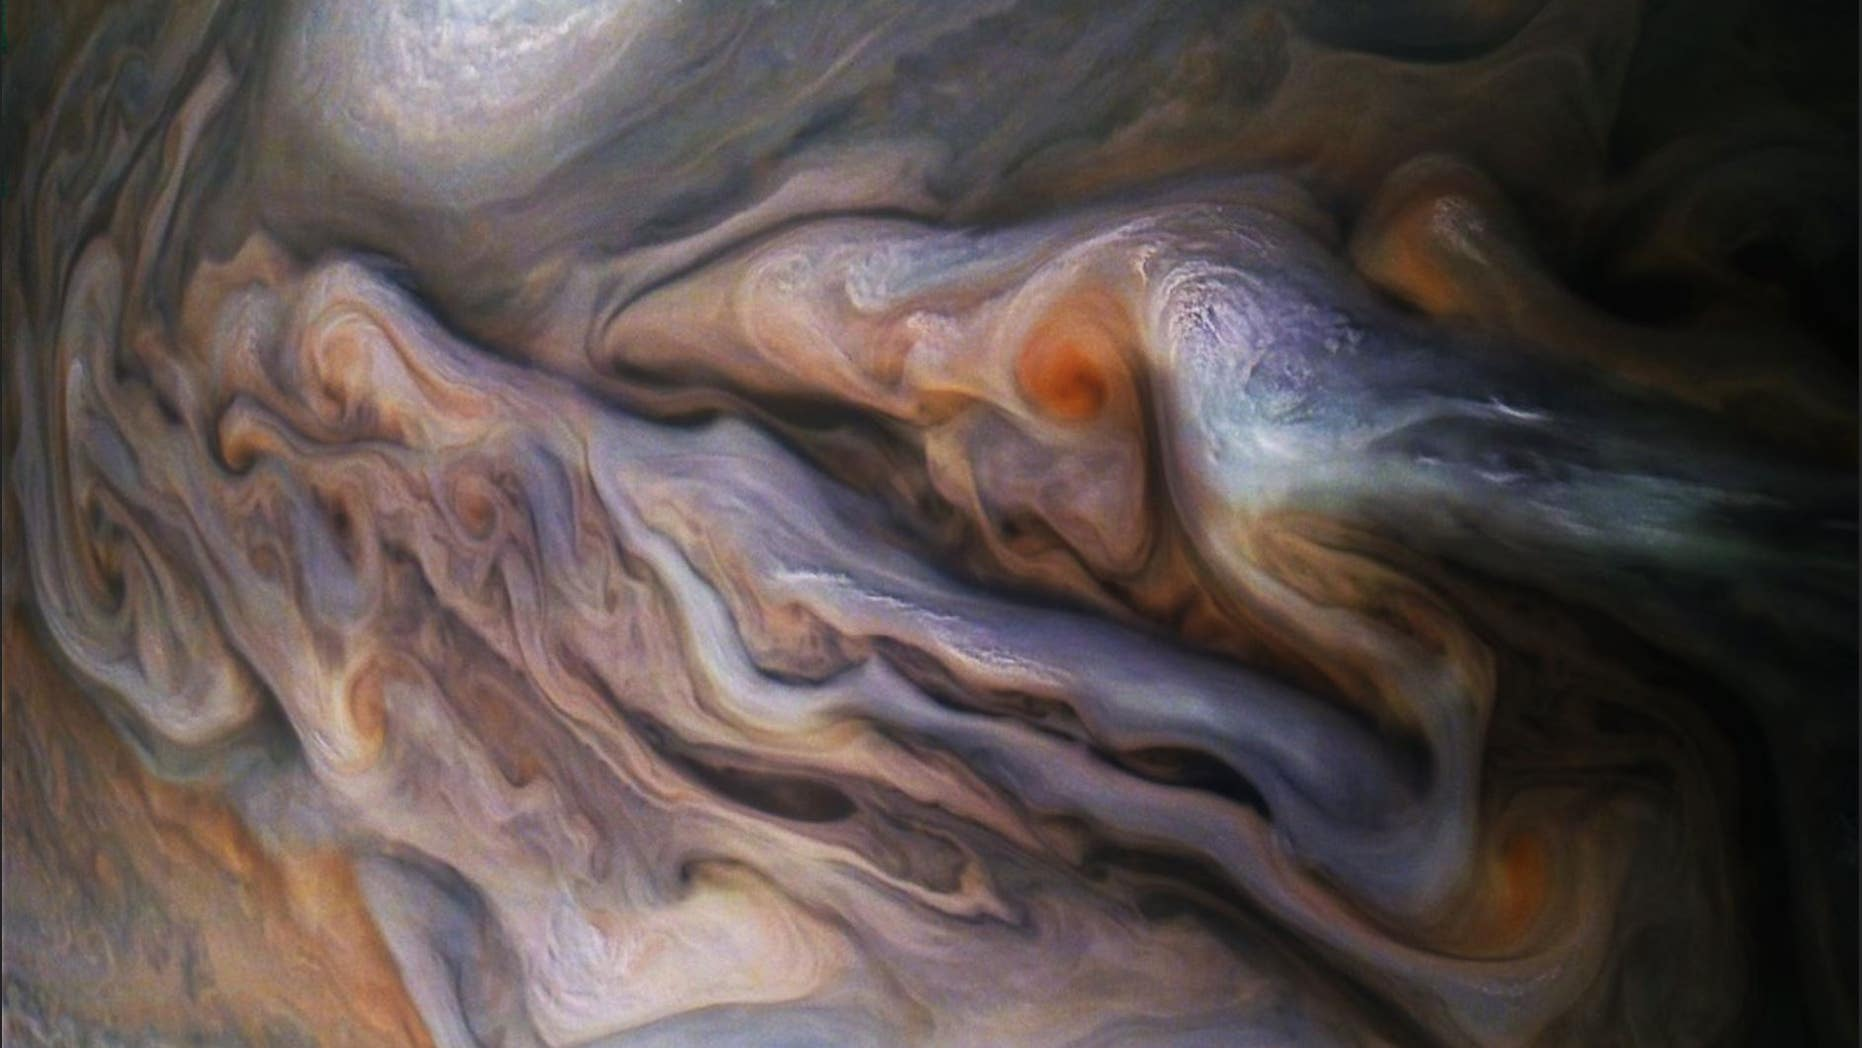 NASA releases new image of Jupiter's swirling clouds